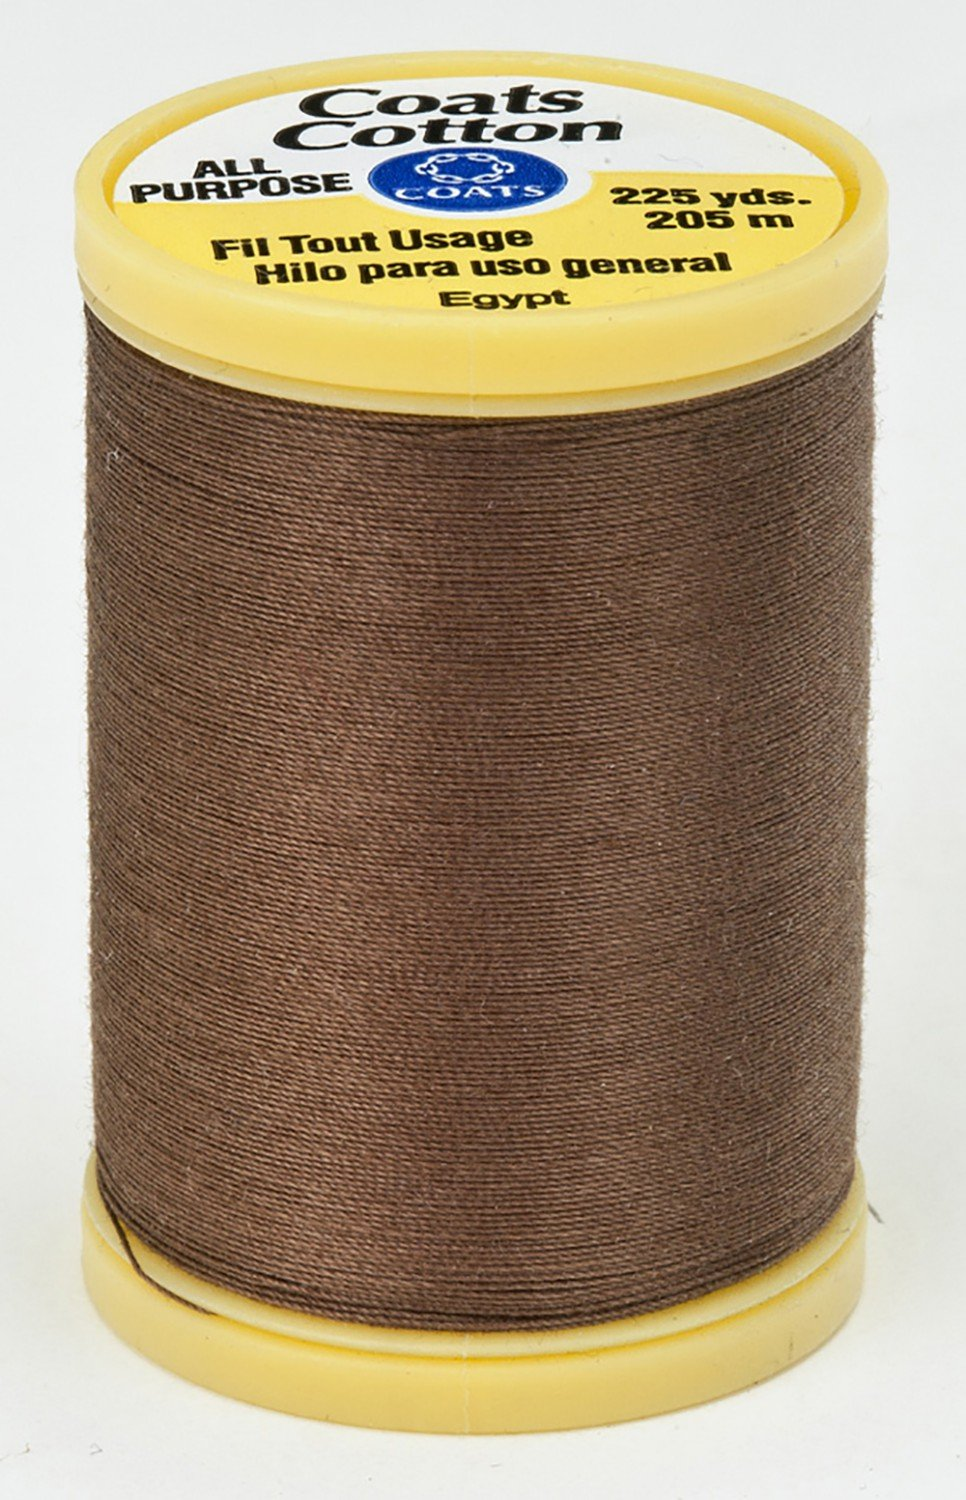 Summer Brown All Purpose Thread 225yd for wool applique